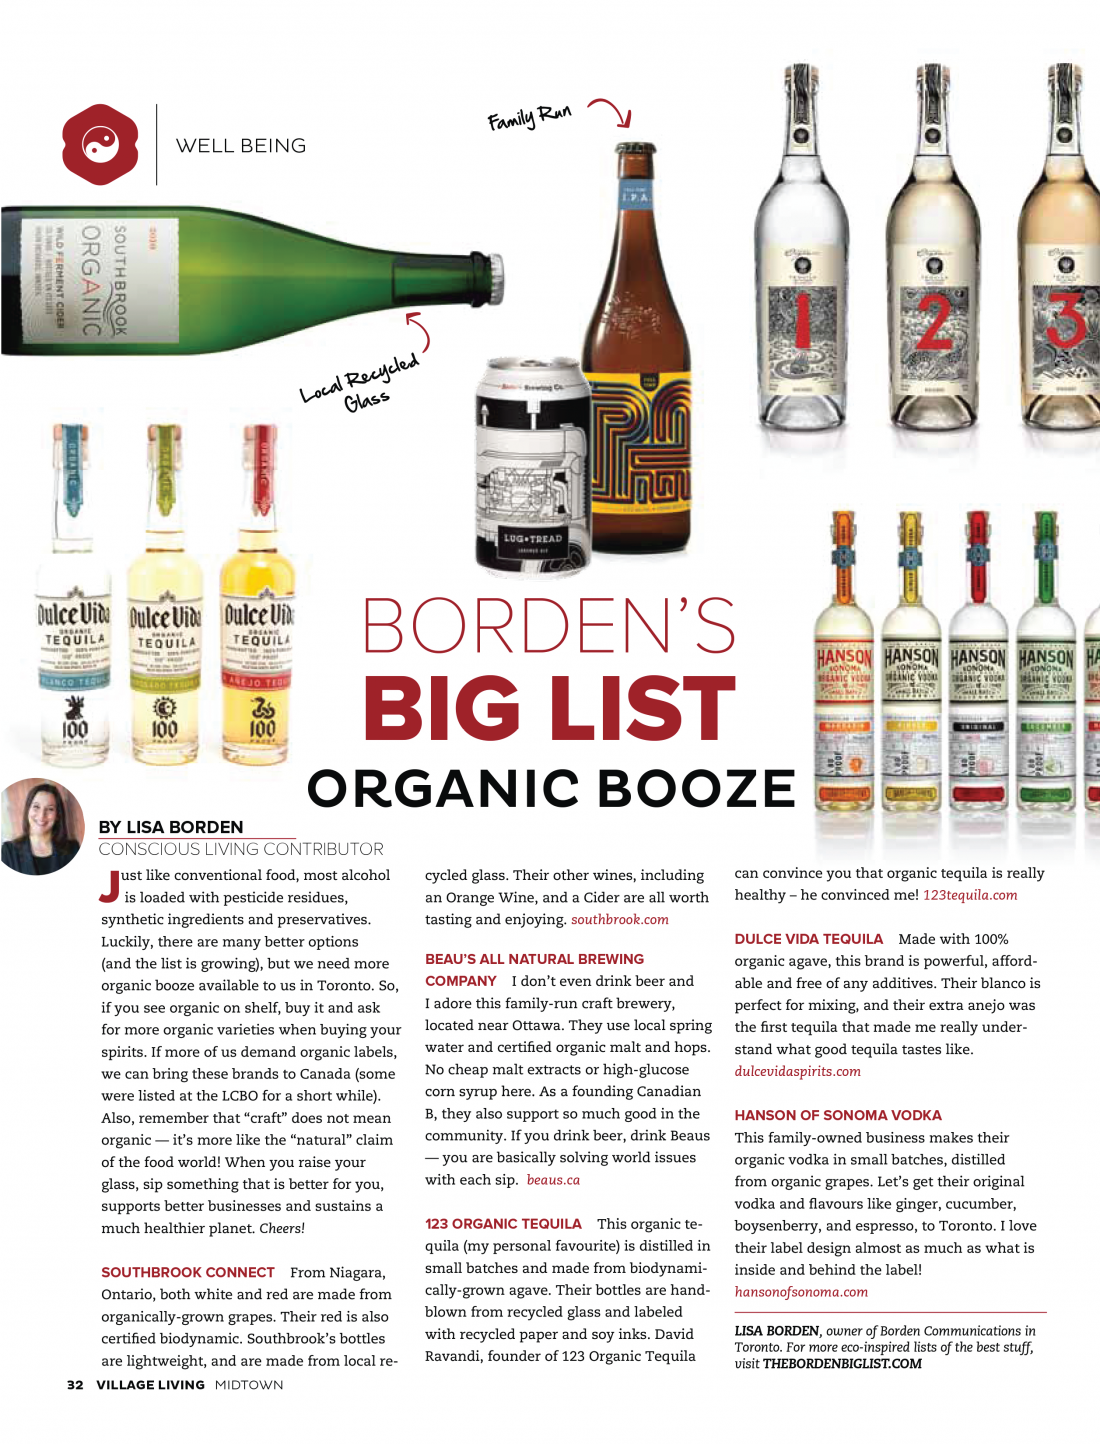 Organic Booze, Village Living Magazine